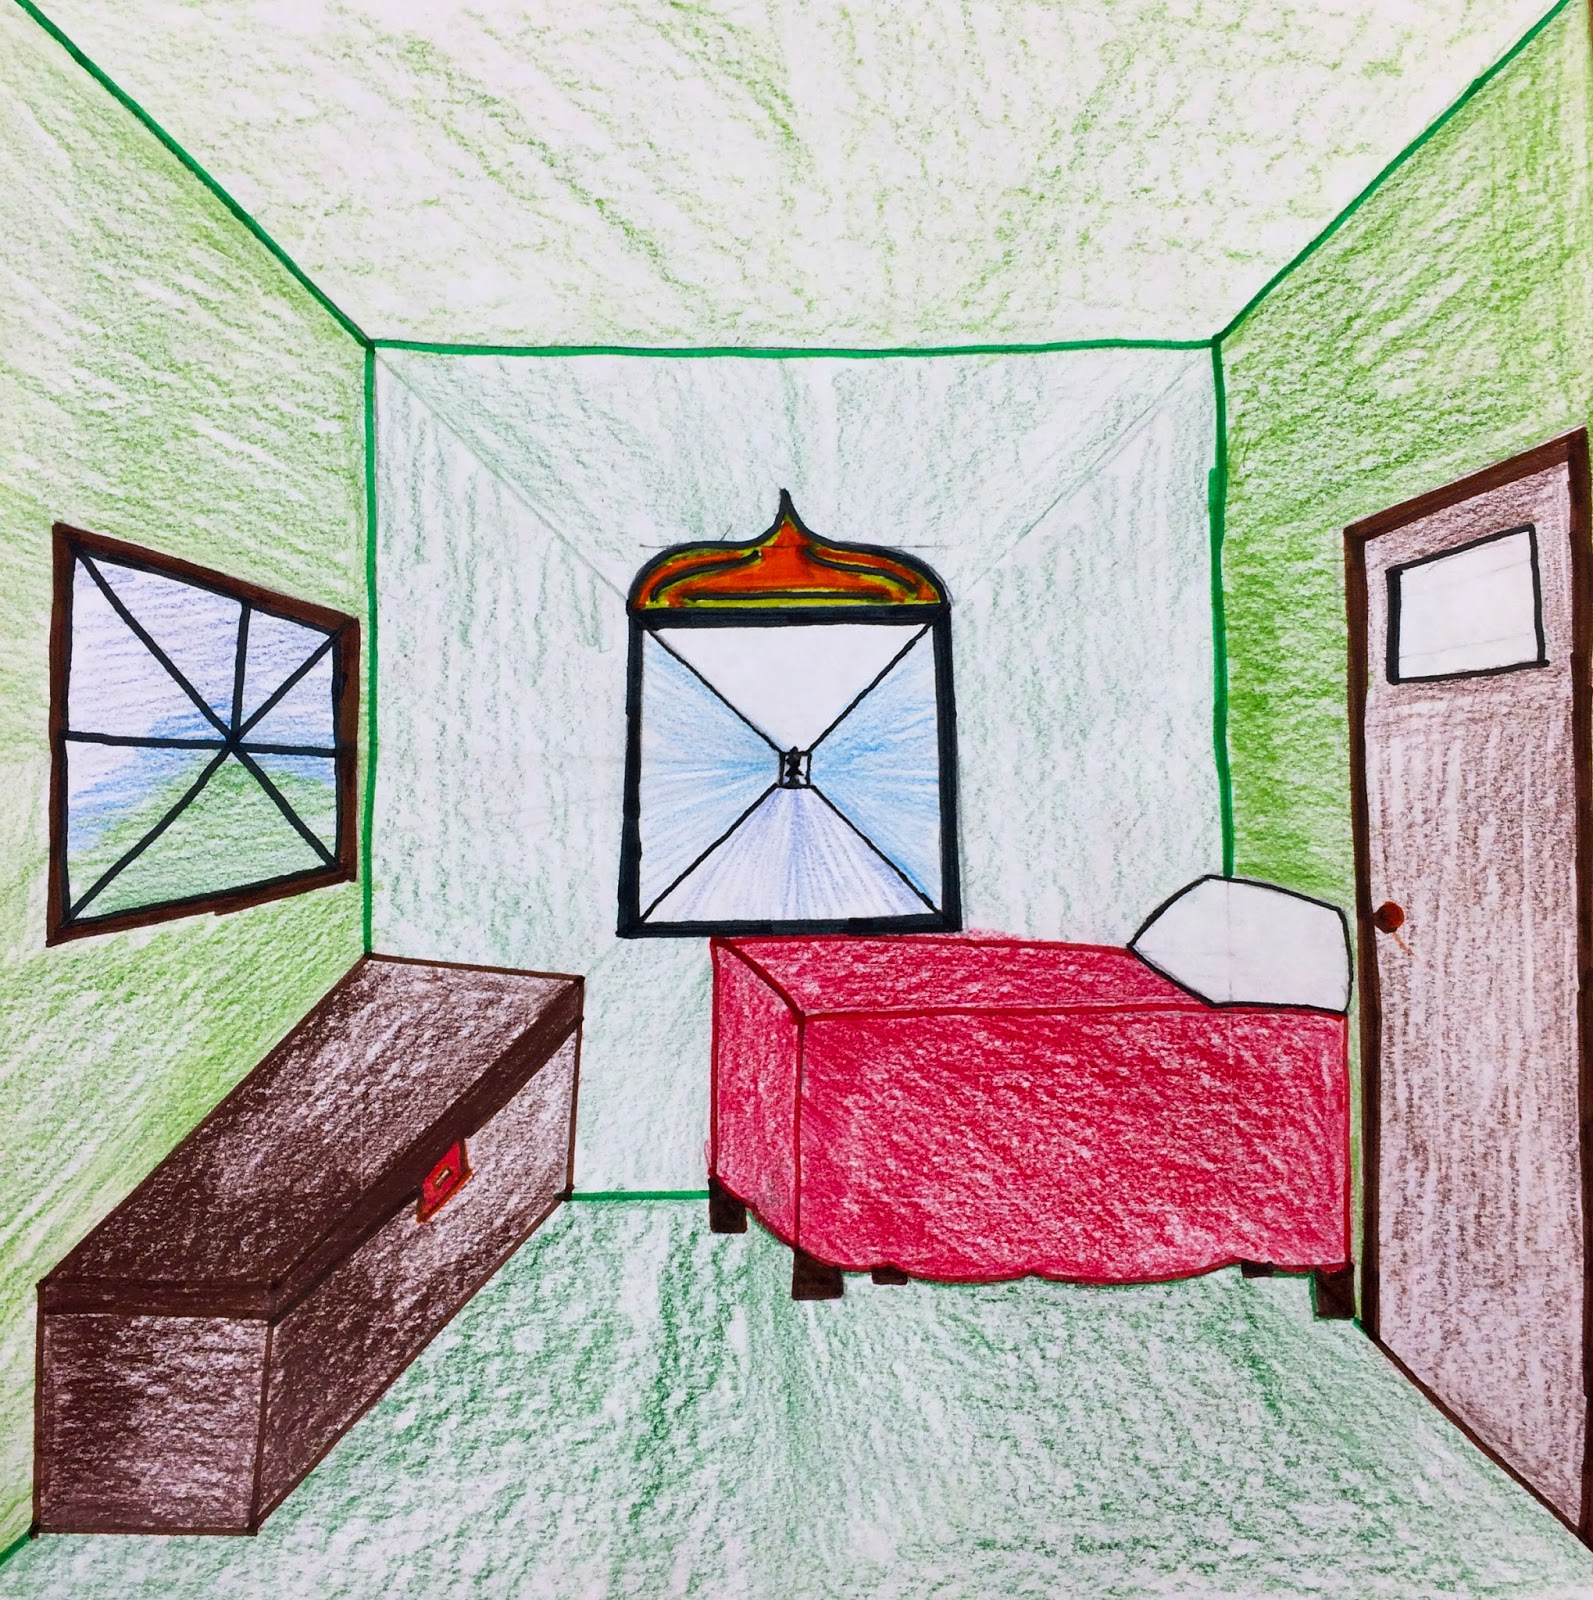 Bedroom drawing perspective - An Error Occurred